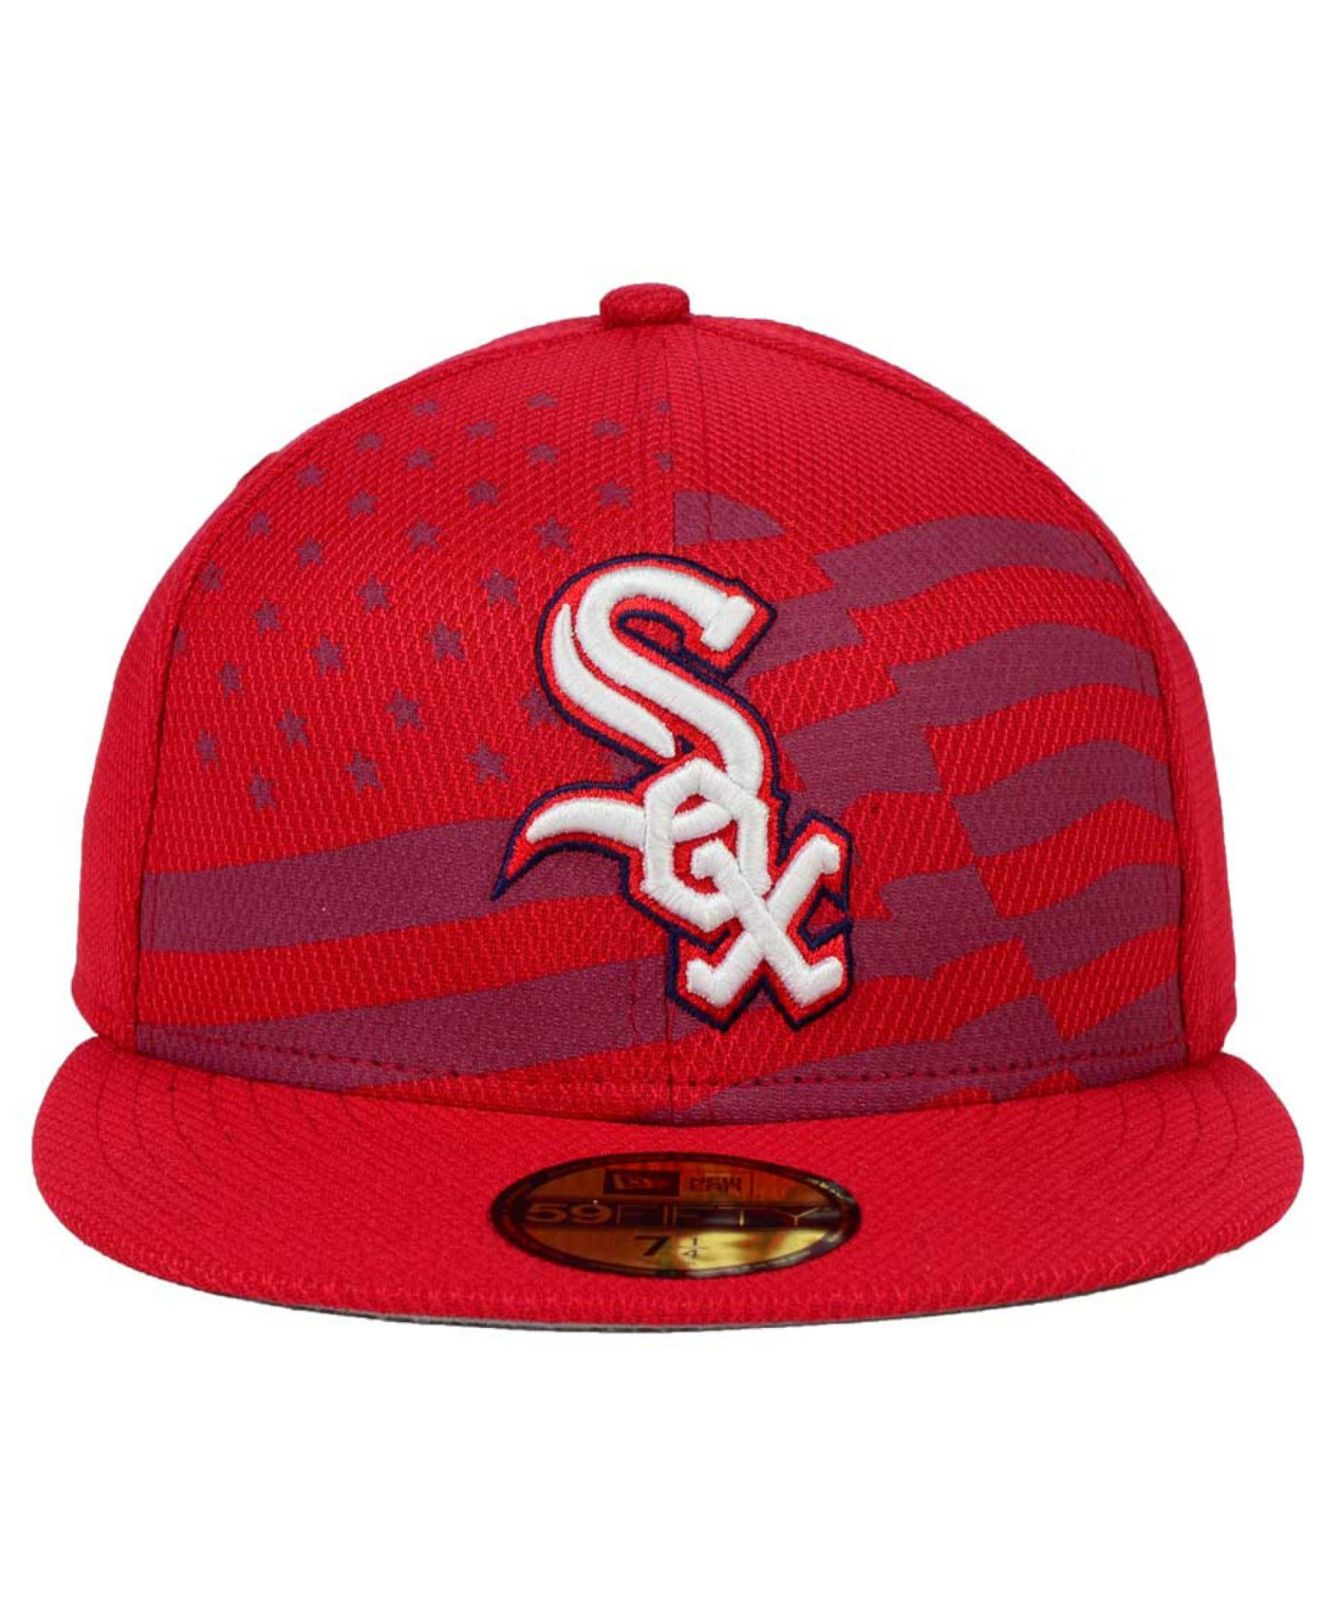 innovative design d70bf 4d657 ... reduced lyst ktz chicago white sox july 4th stars stripes 59fifty cap  in 0f9b9 ea66b